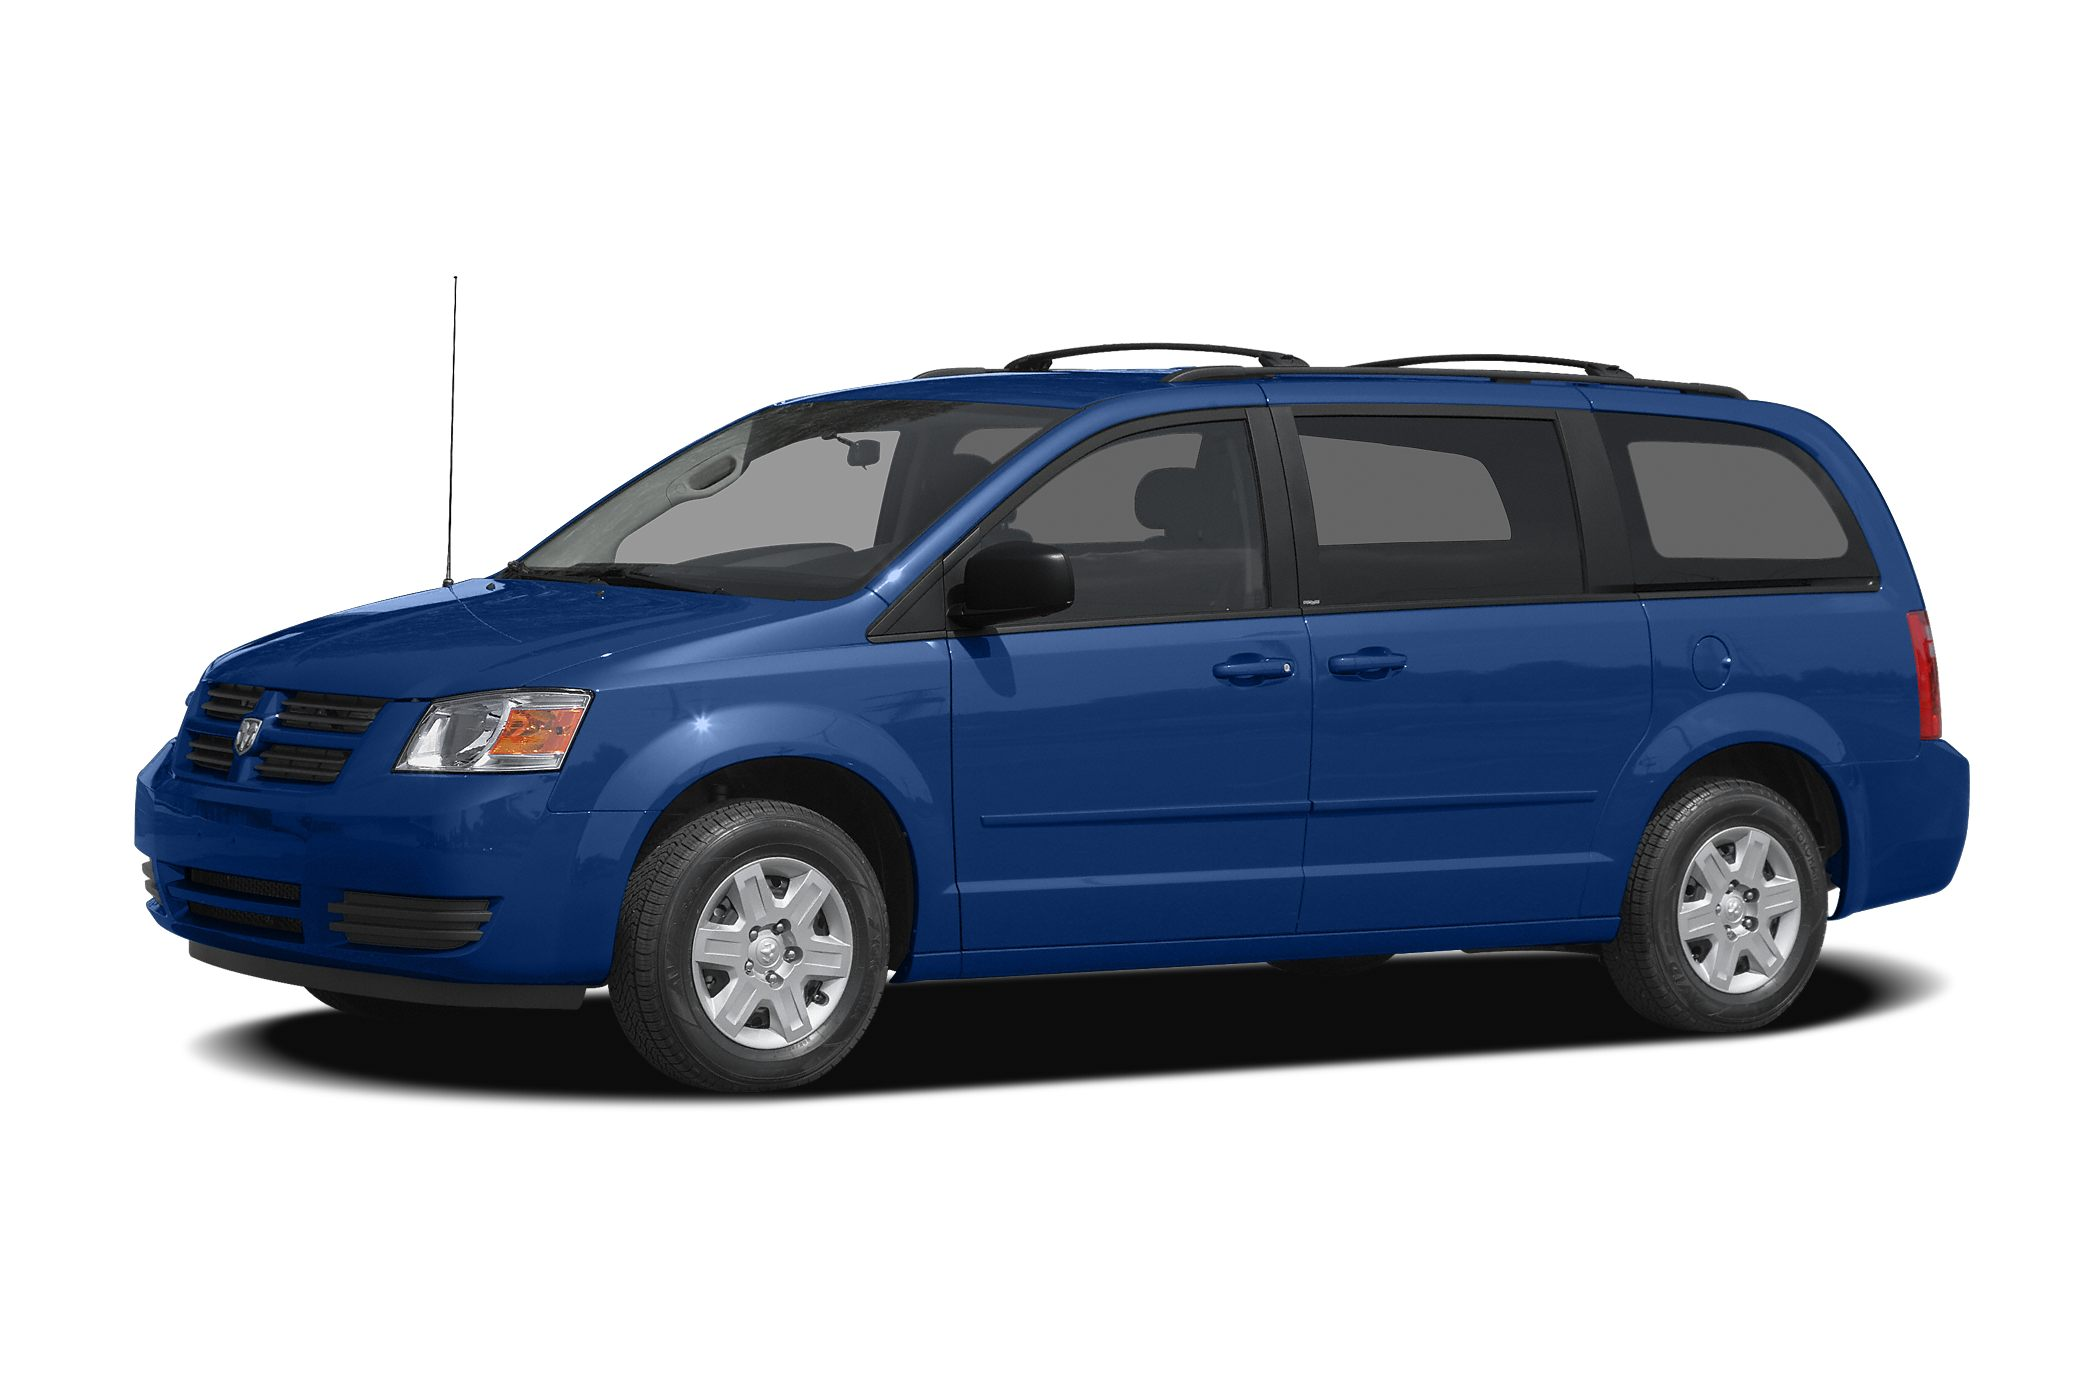 2008 Dodge Grand Caravan SXT Minivan for sale in Stockton for $14,999 with 66,620 miles.